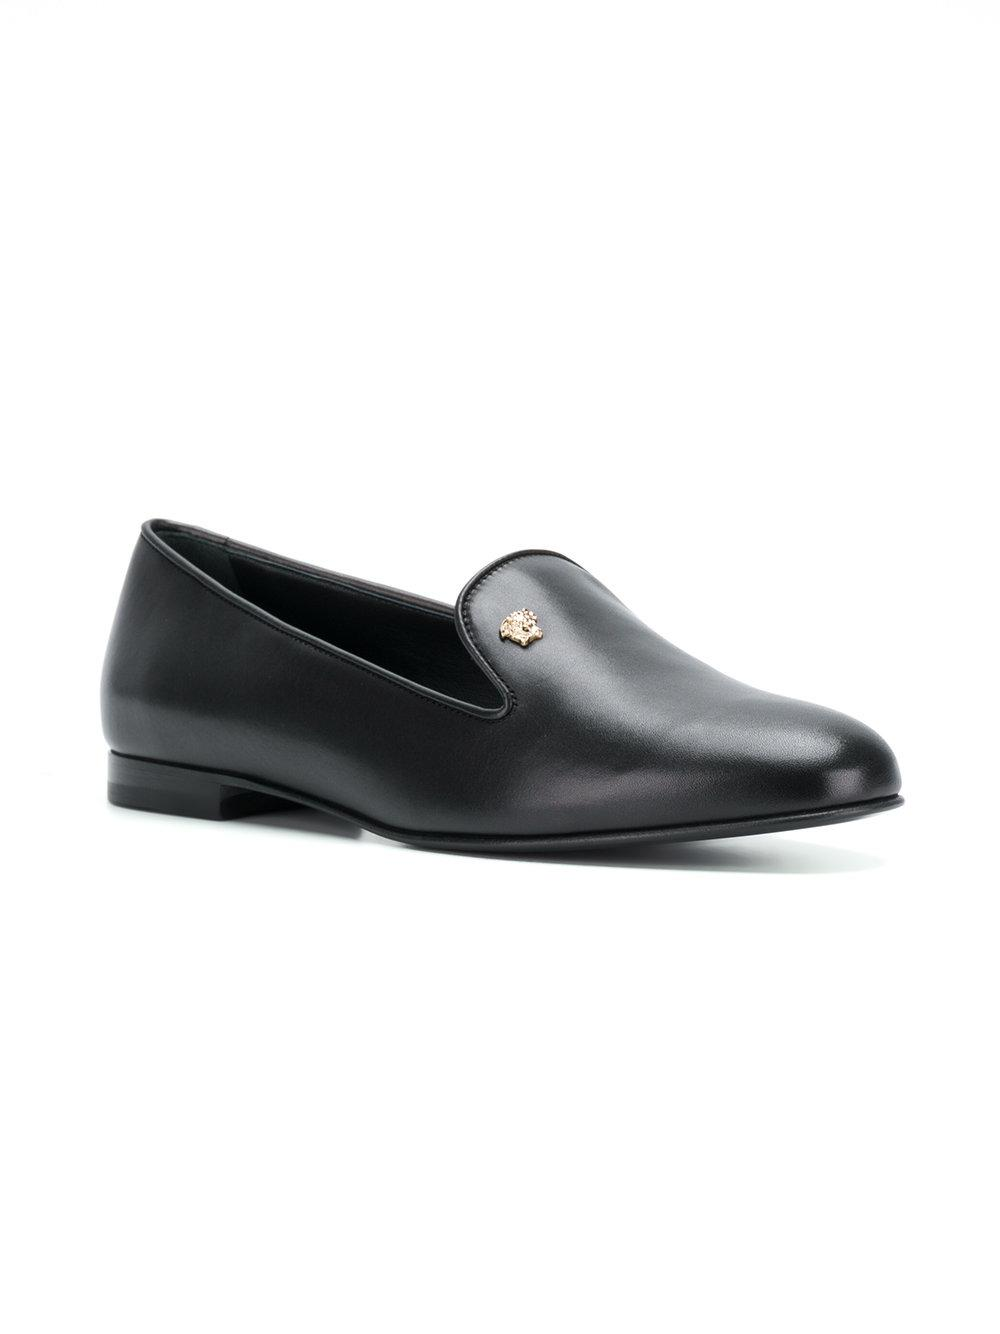 Versace classic Medusa loafers cheap sale real outlet store Locations pCpJlhy